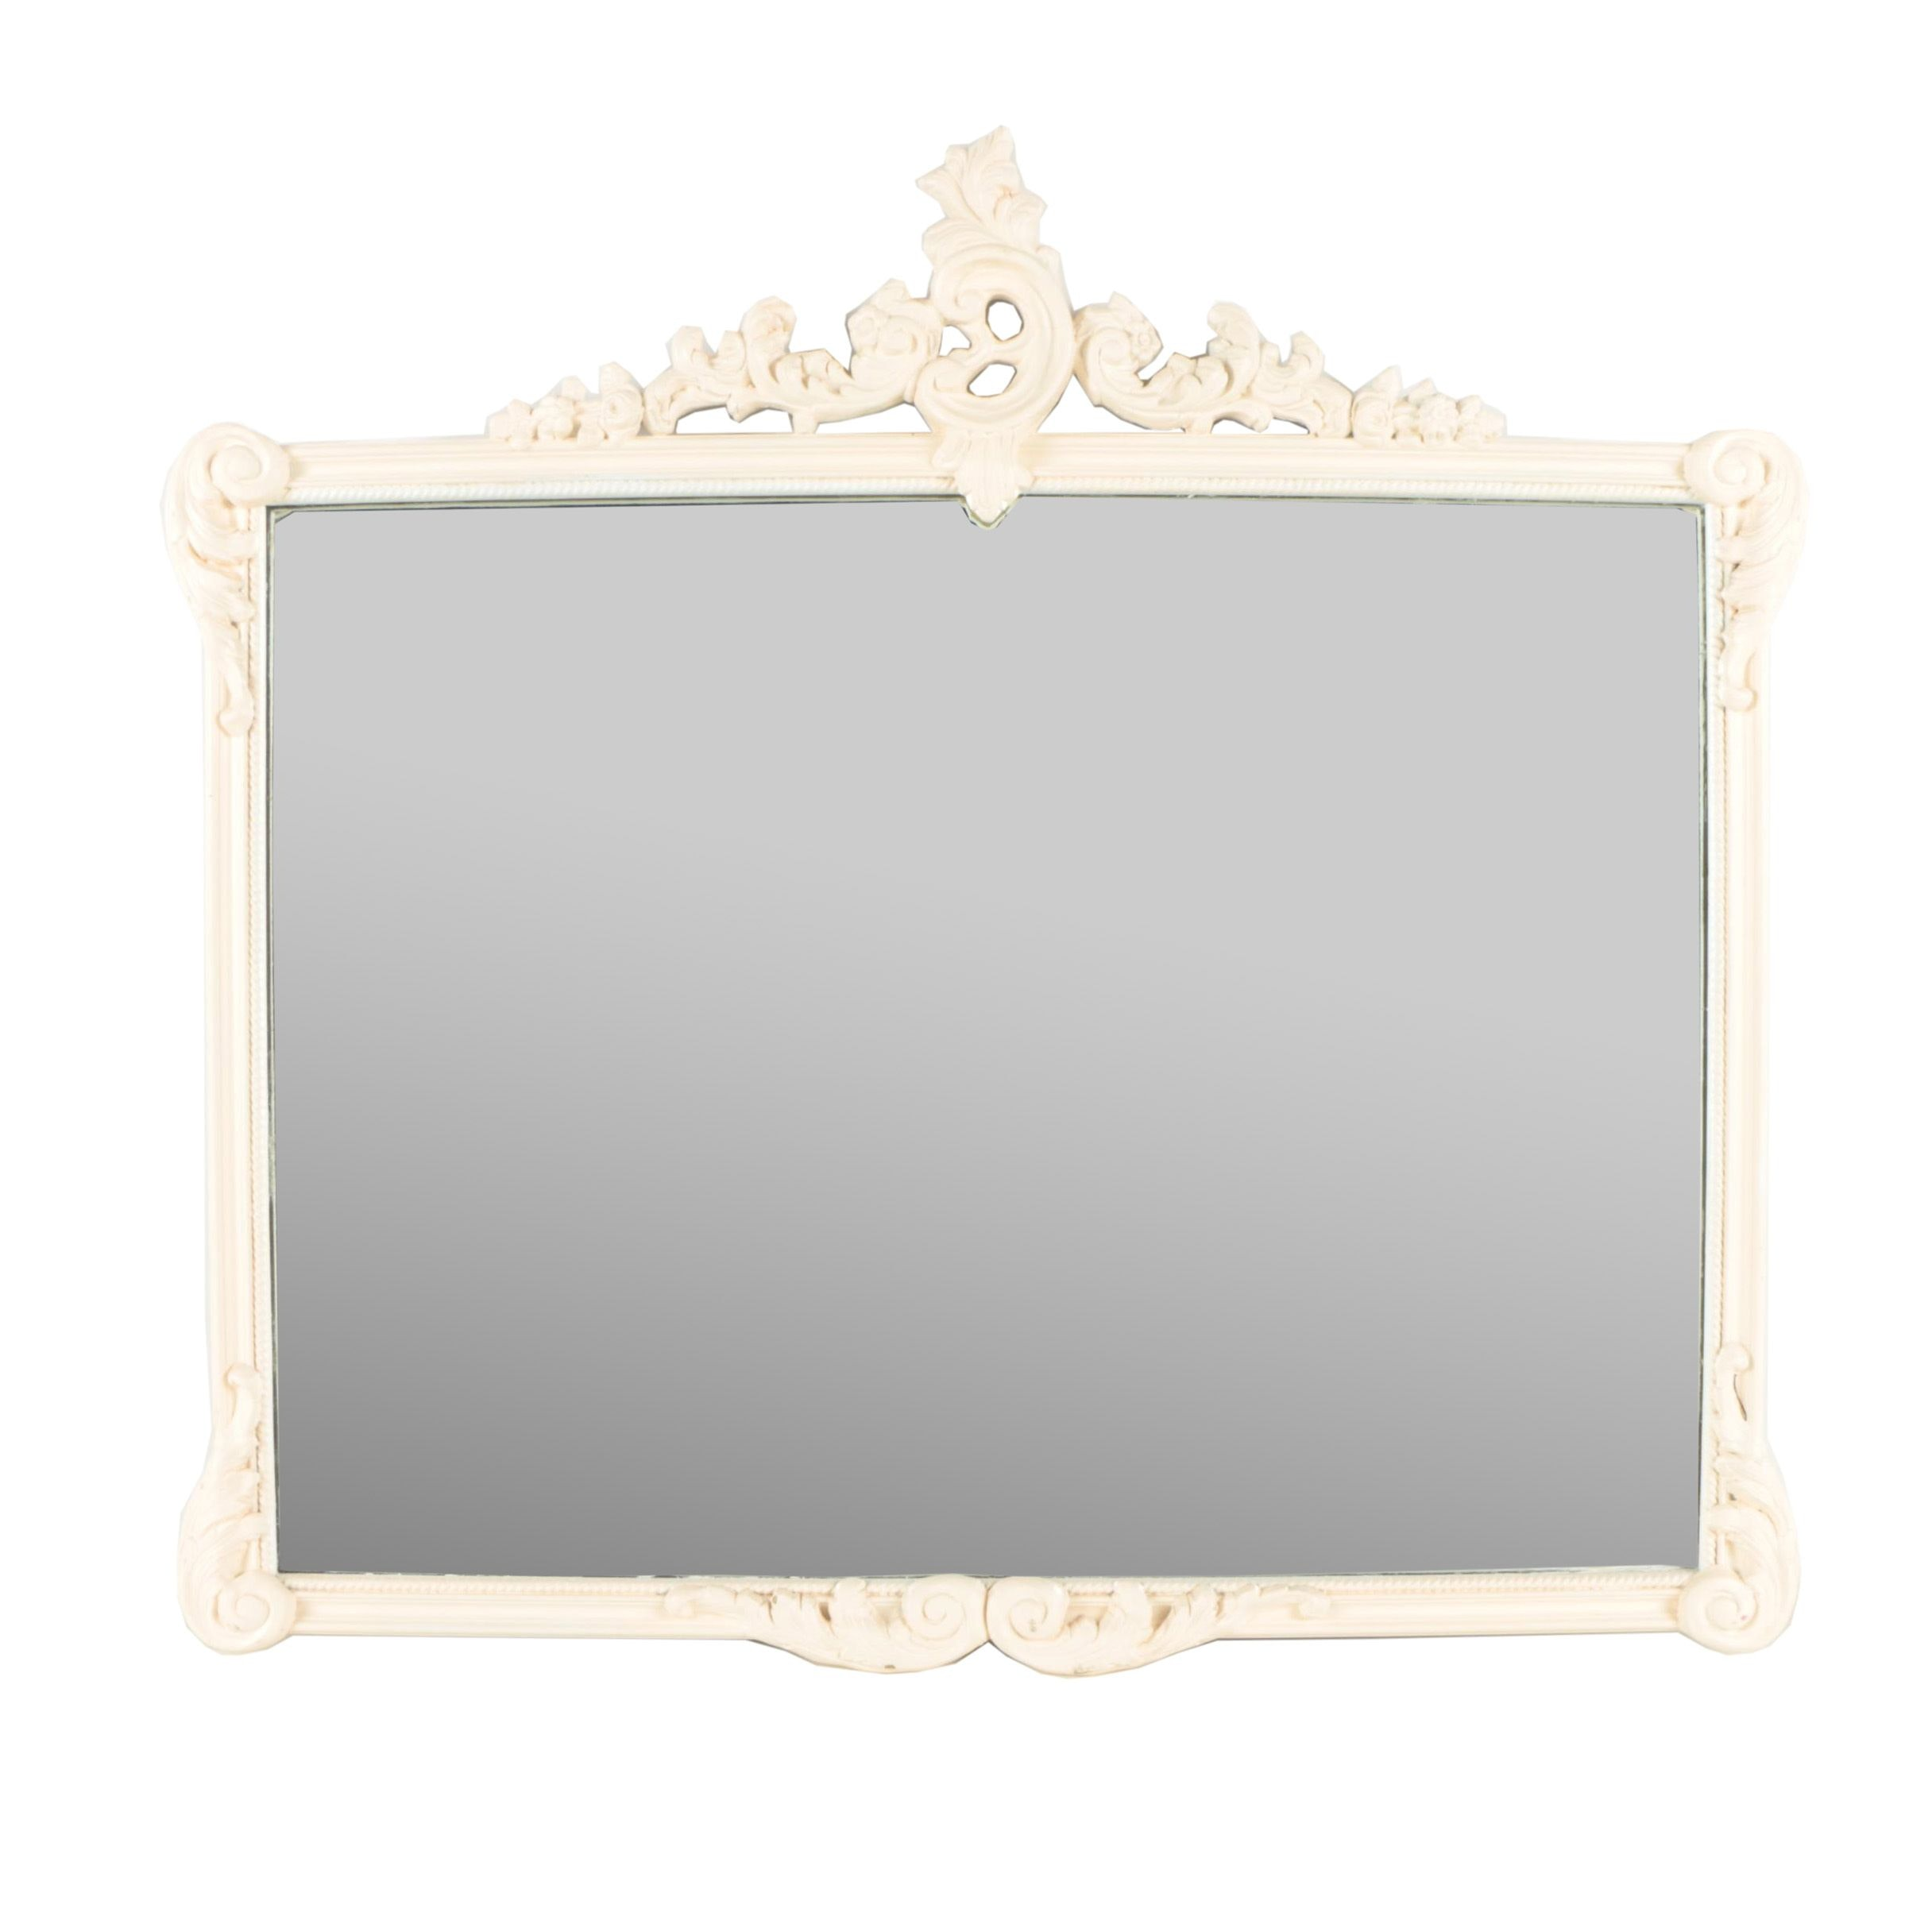 Vintage Decorative Painted and Gessoed Wood Frame Wall Mirror